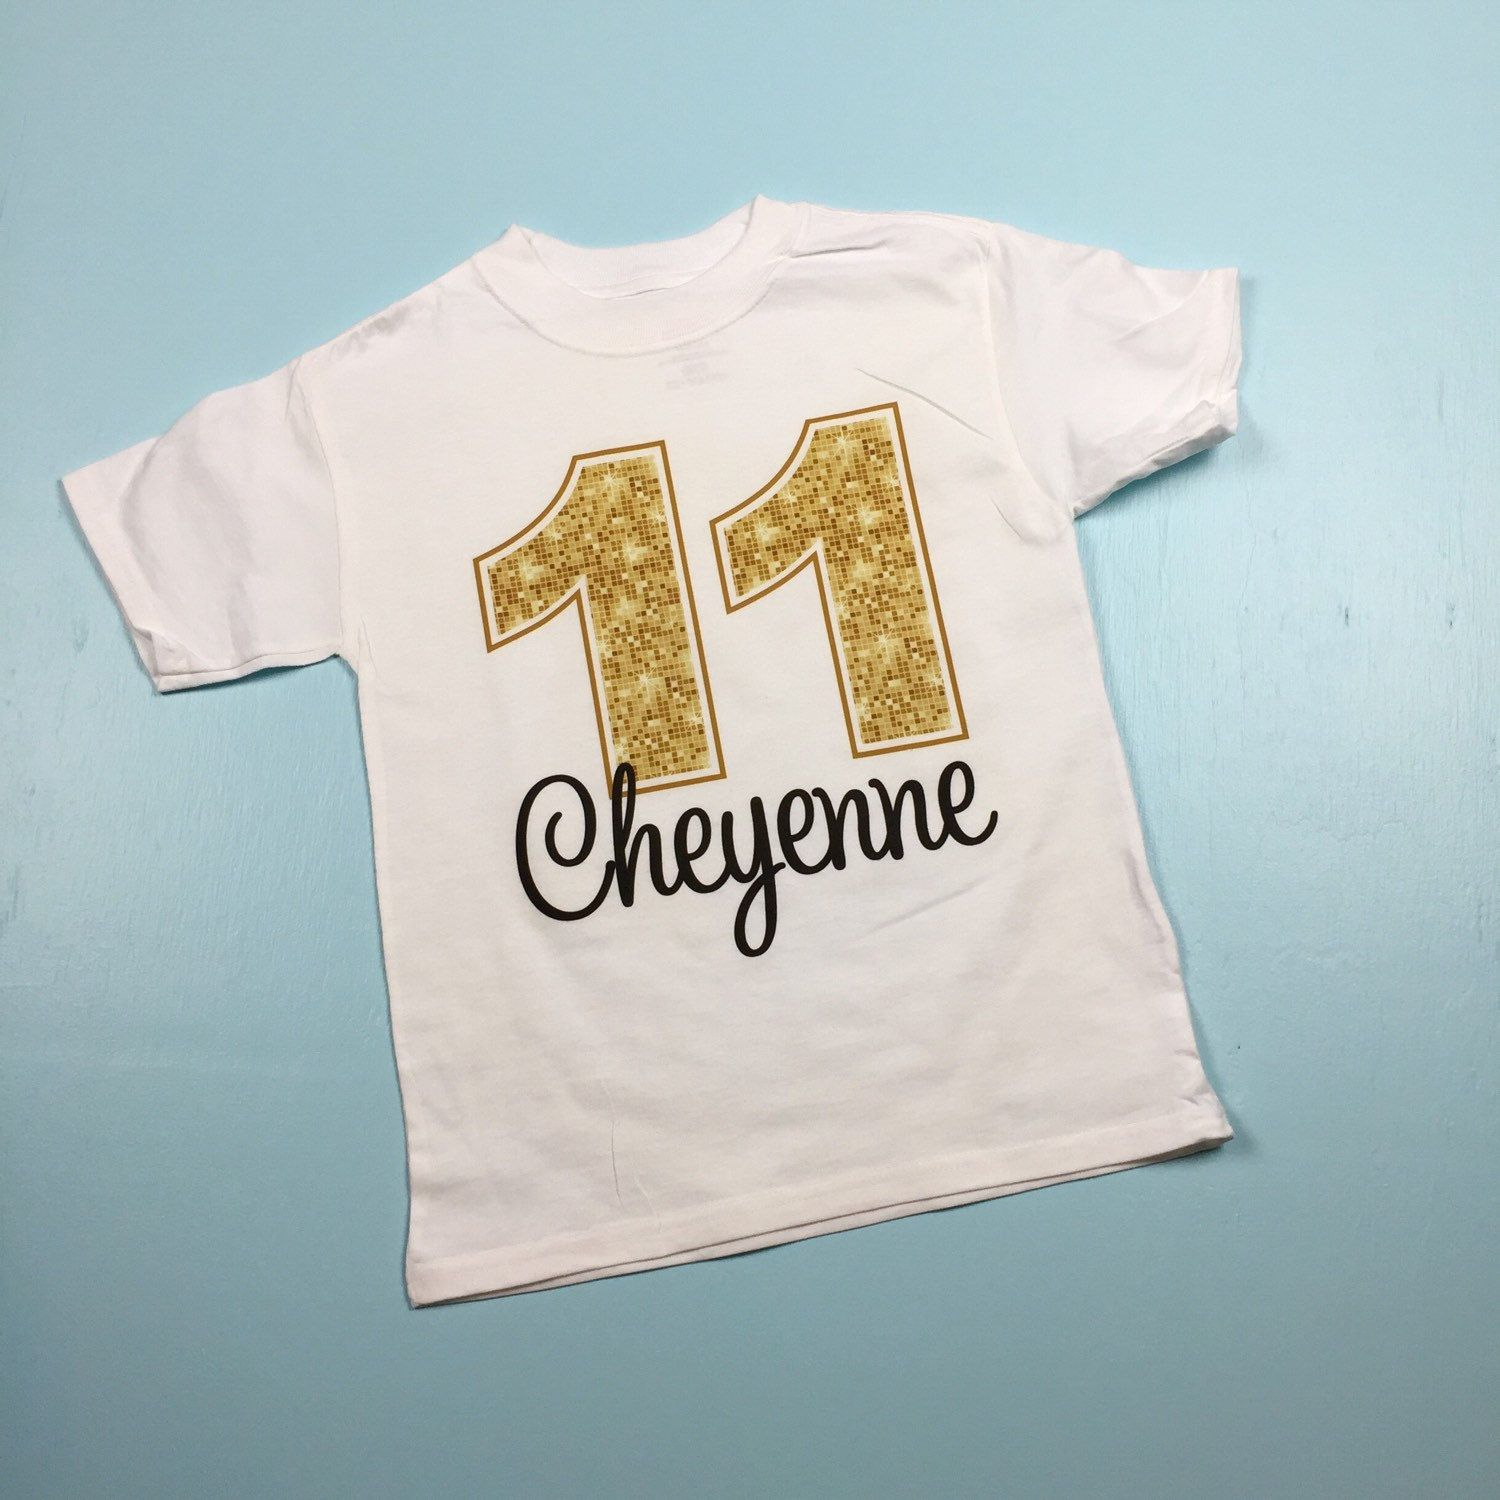 Golden Birthday Shirt For 11 Year Old Girl